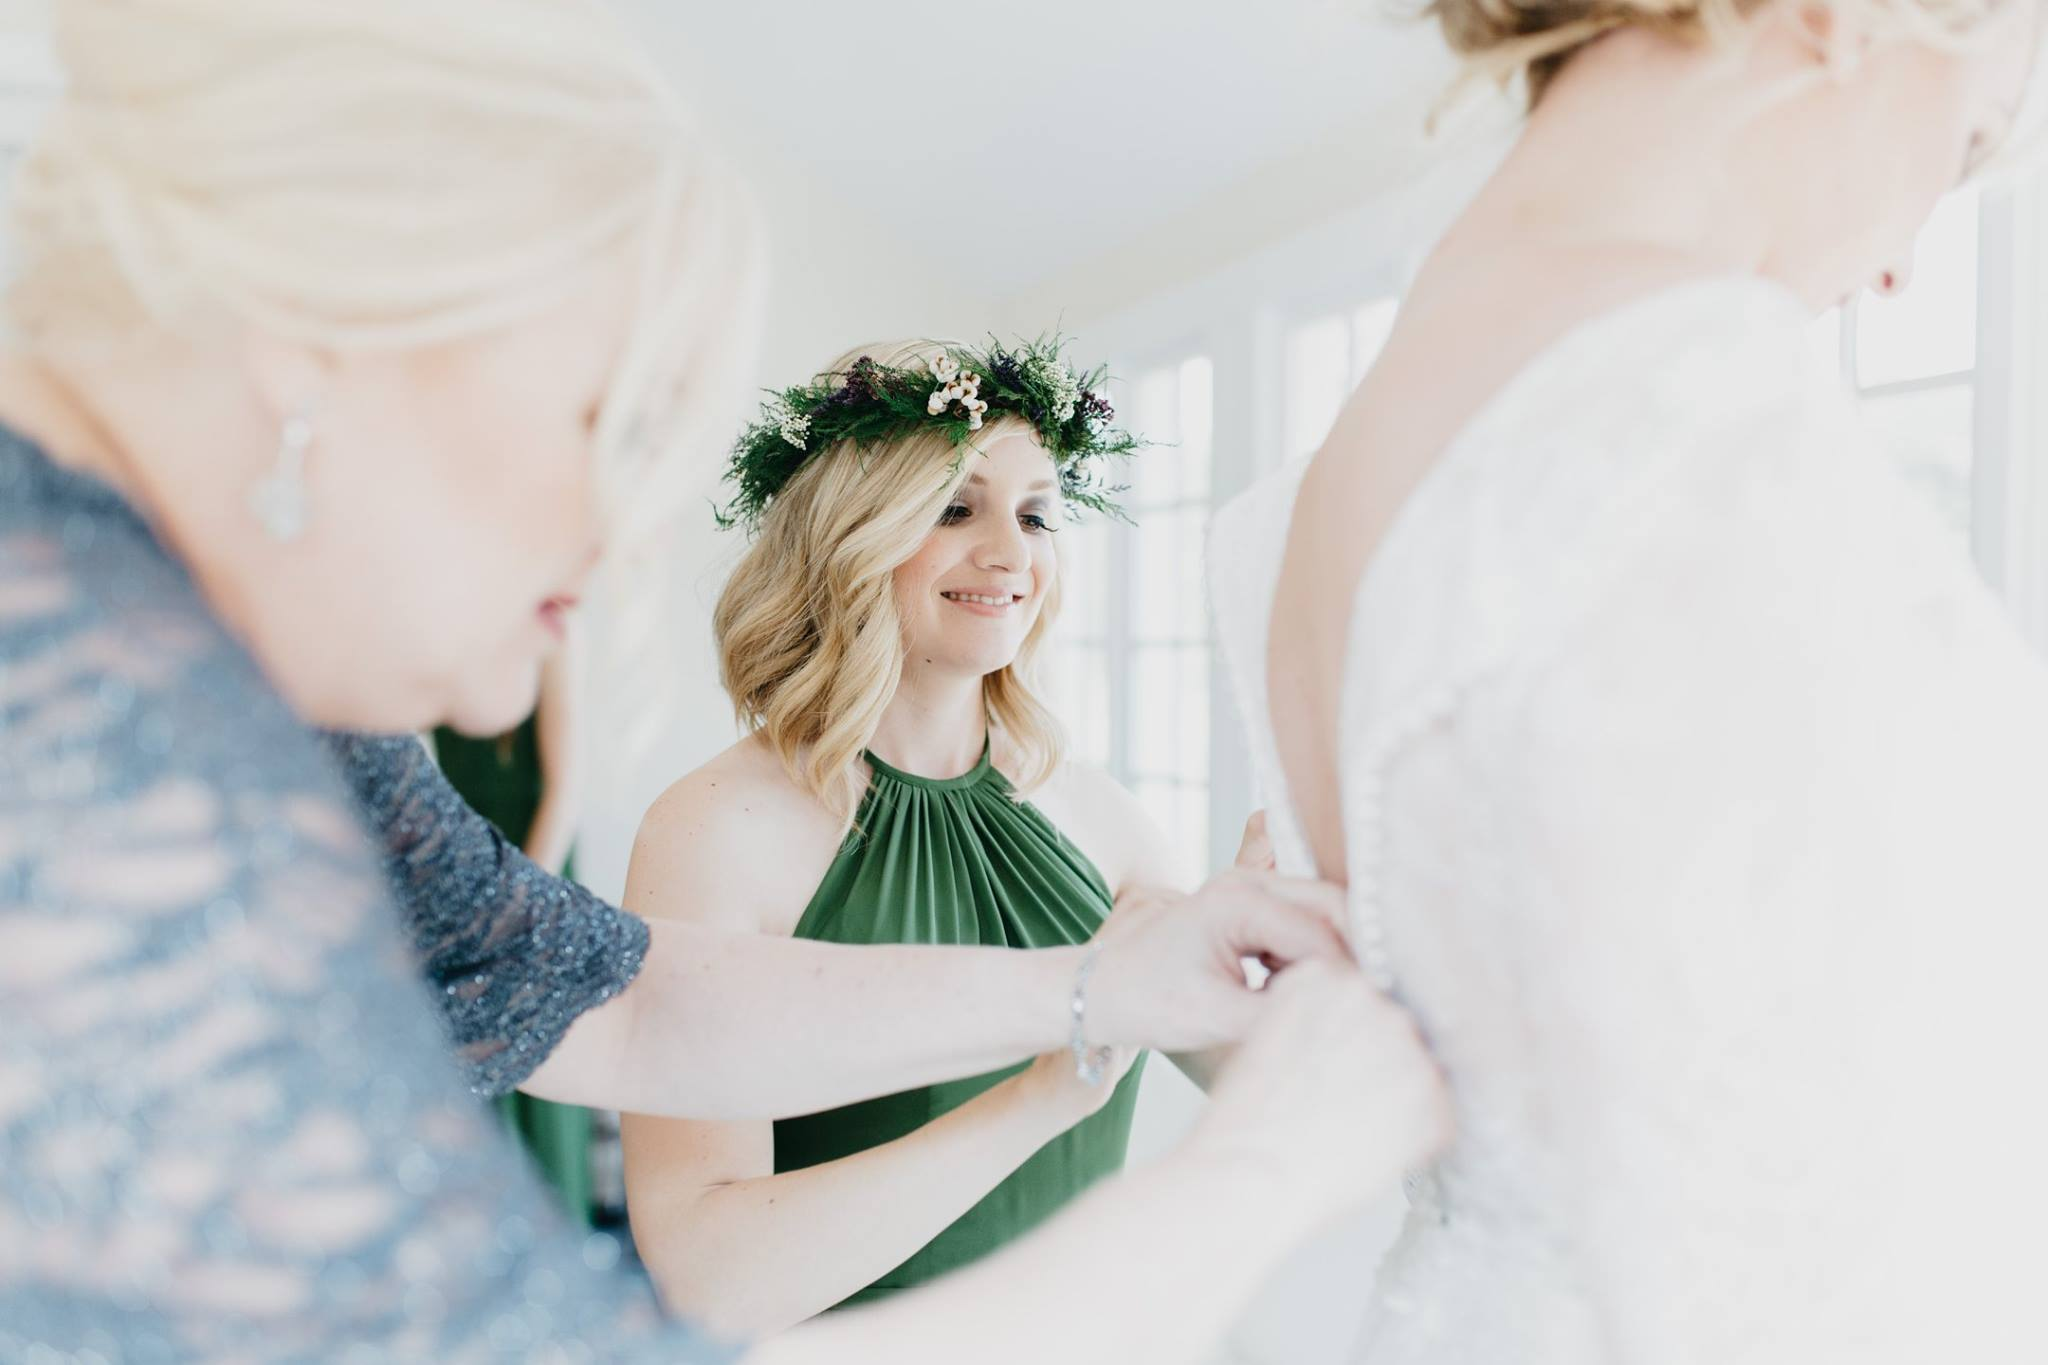 Bridesmaid in green dress with floral crown helping bride into her dress.